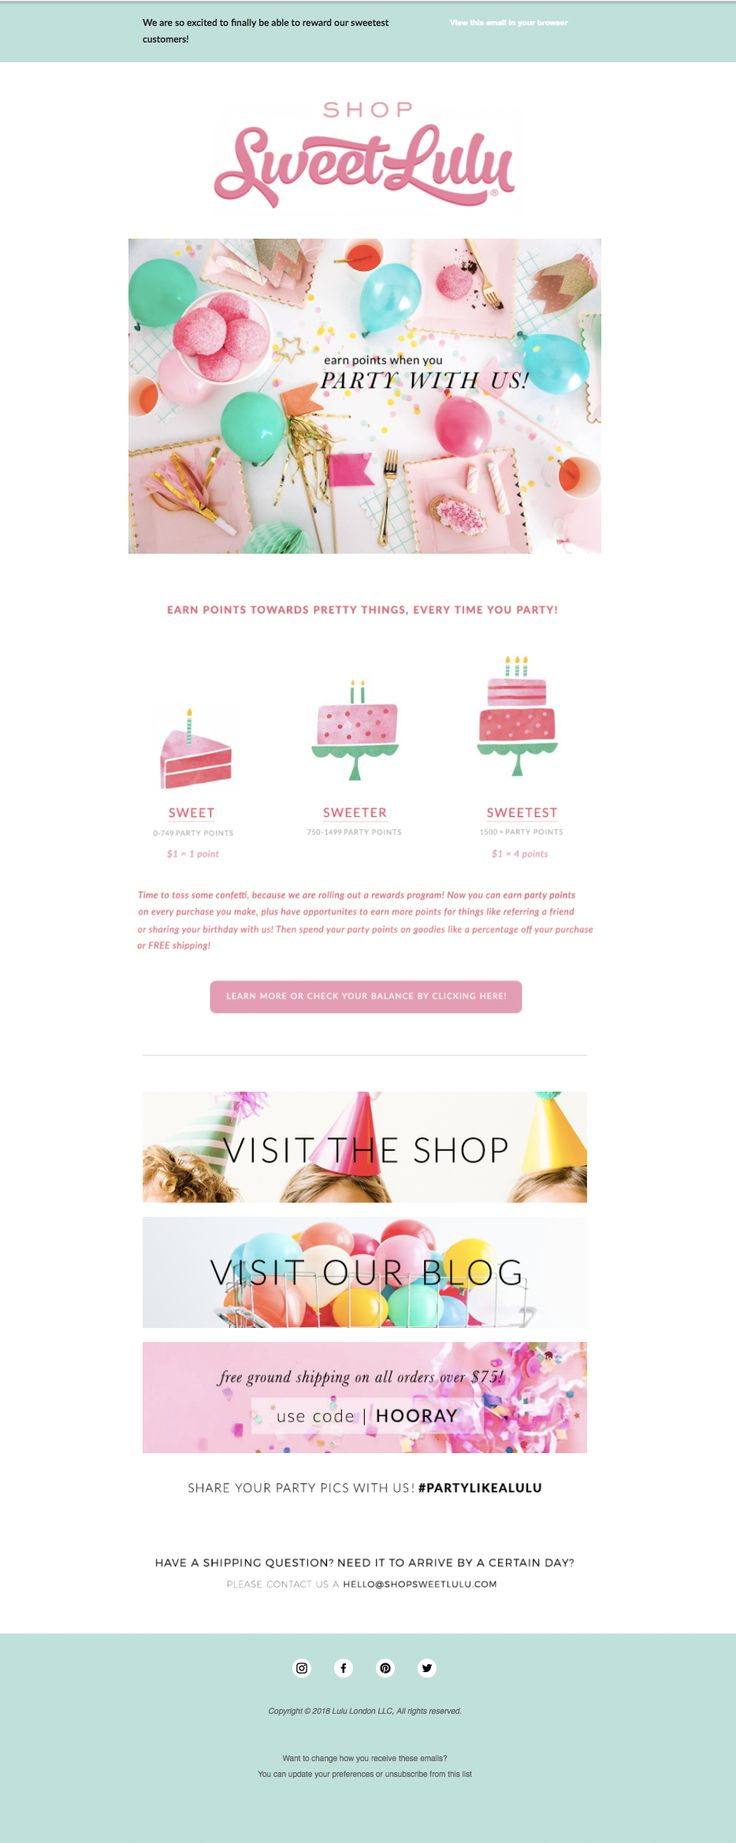 Sweet Lulu invites customers to join the (rewards) party with this fun and festive email.